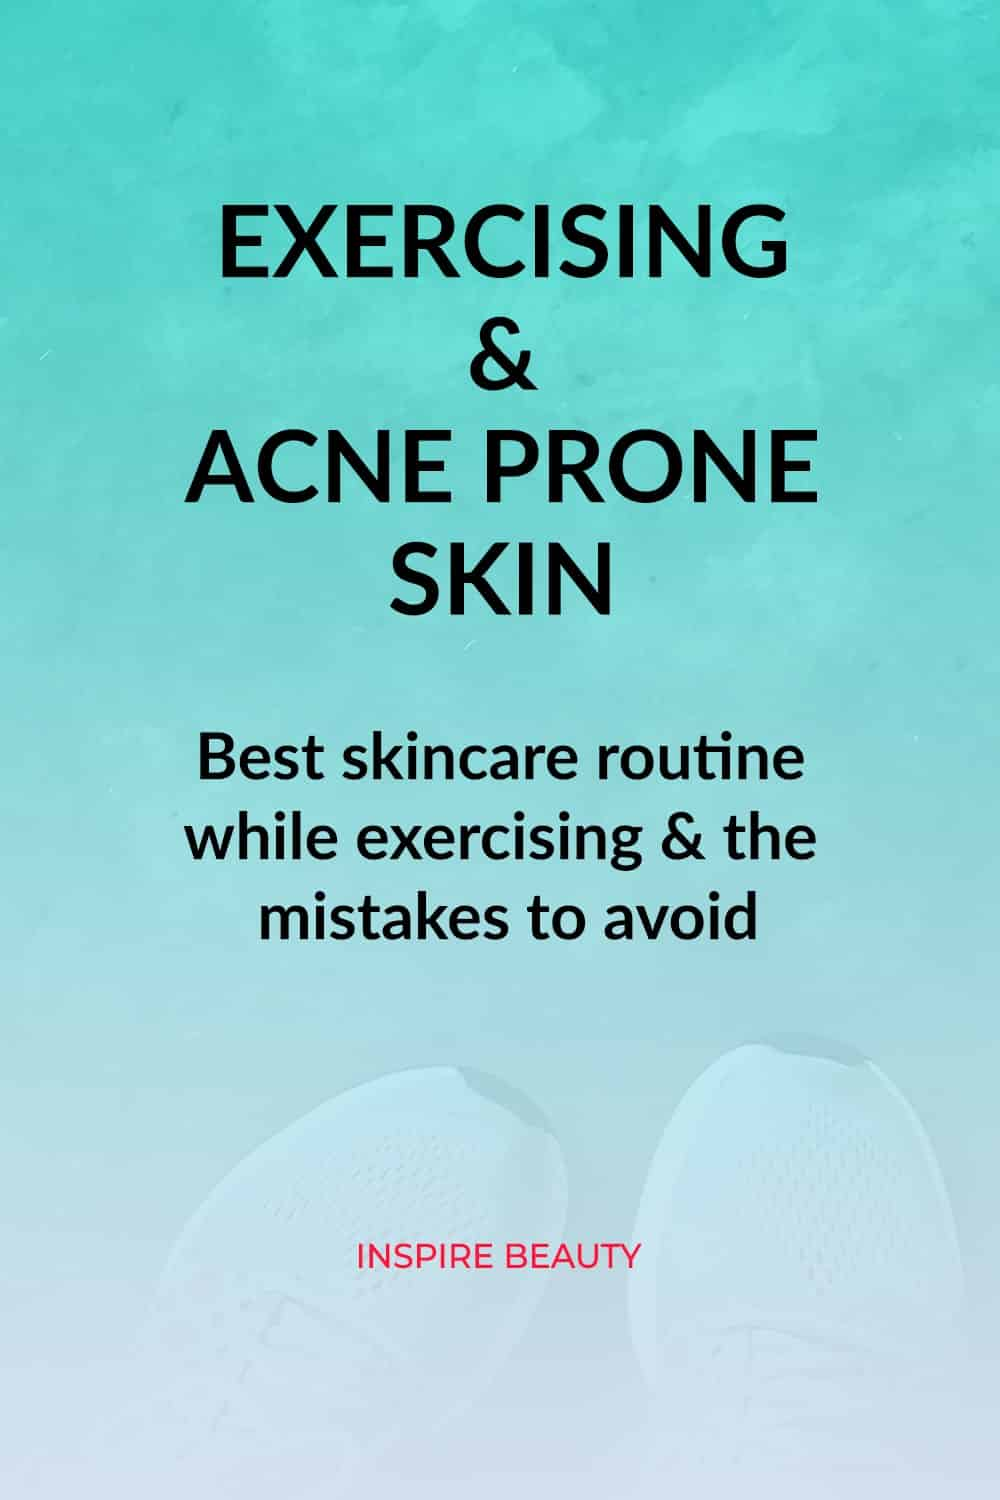 Find out best skincare routine before and after exercising for acne prone skin